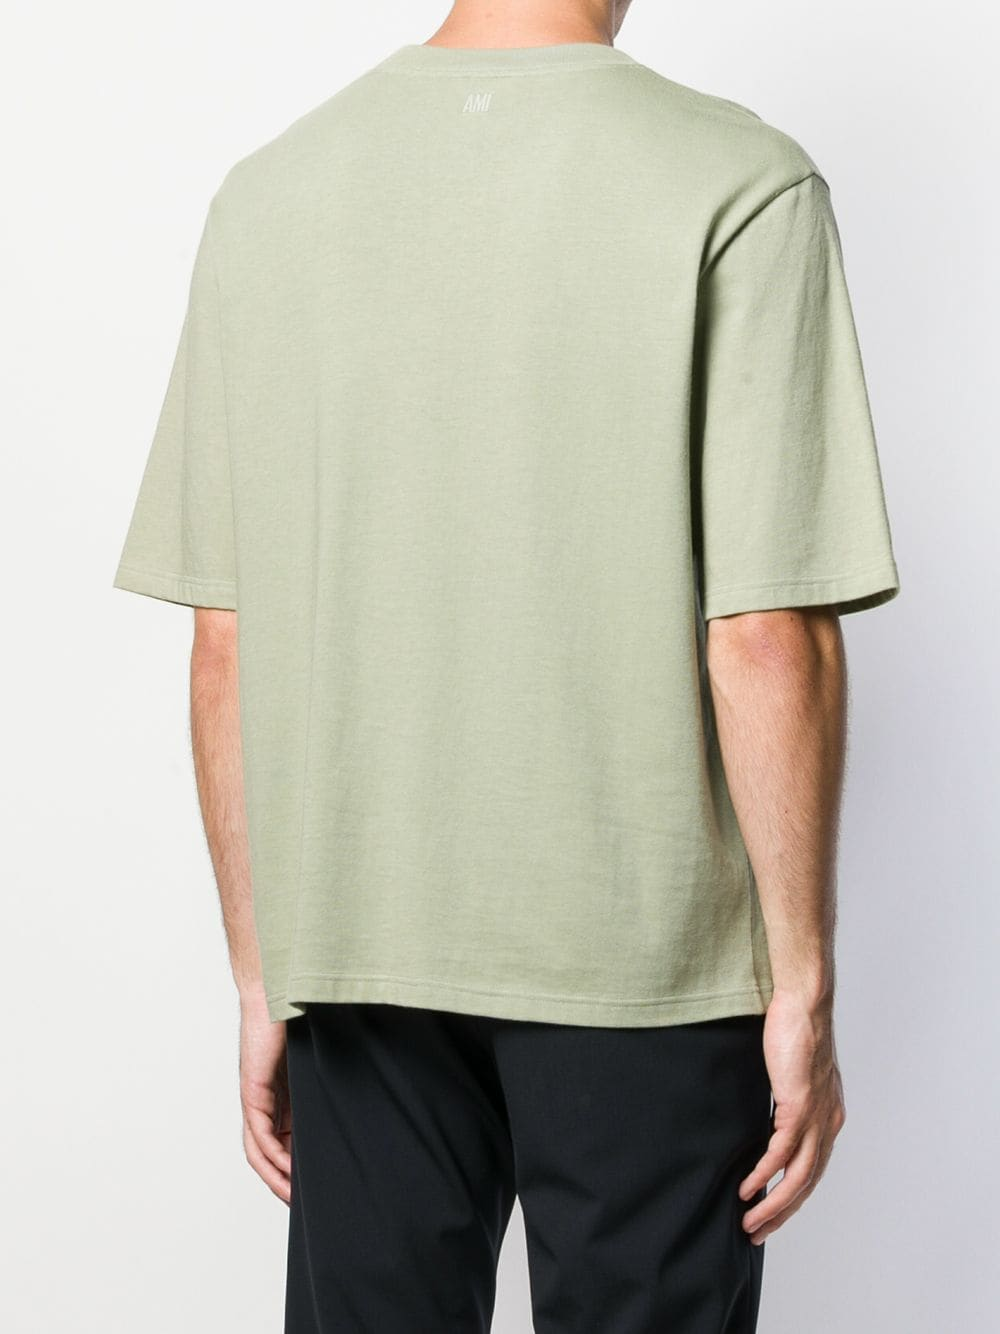 MEN T SHIRT WITH AMI LABEL ON FRONT